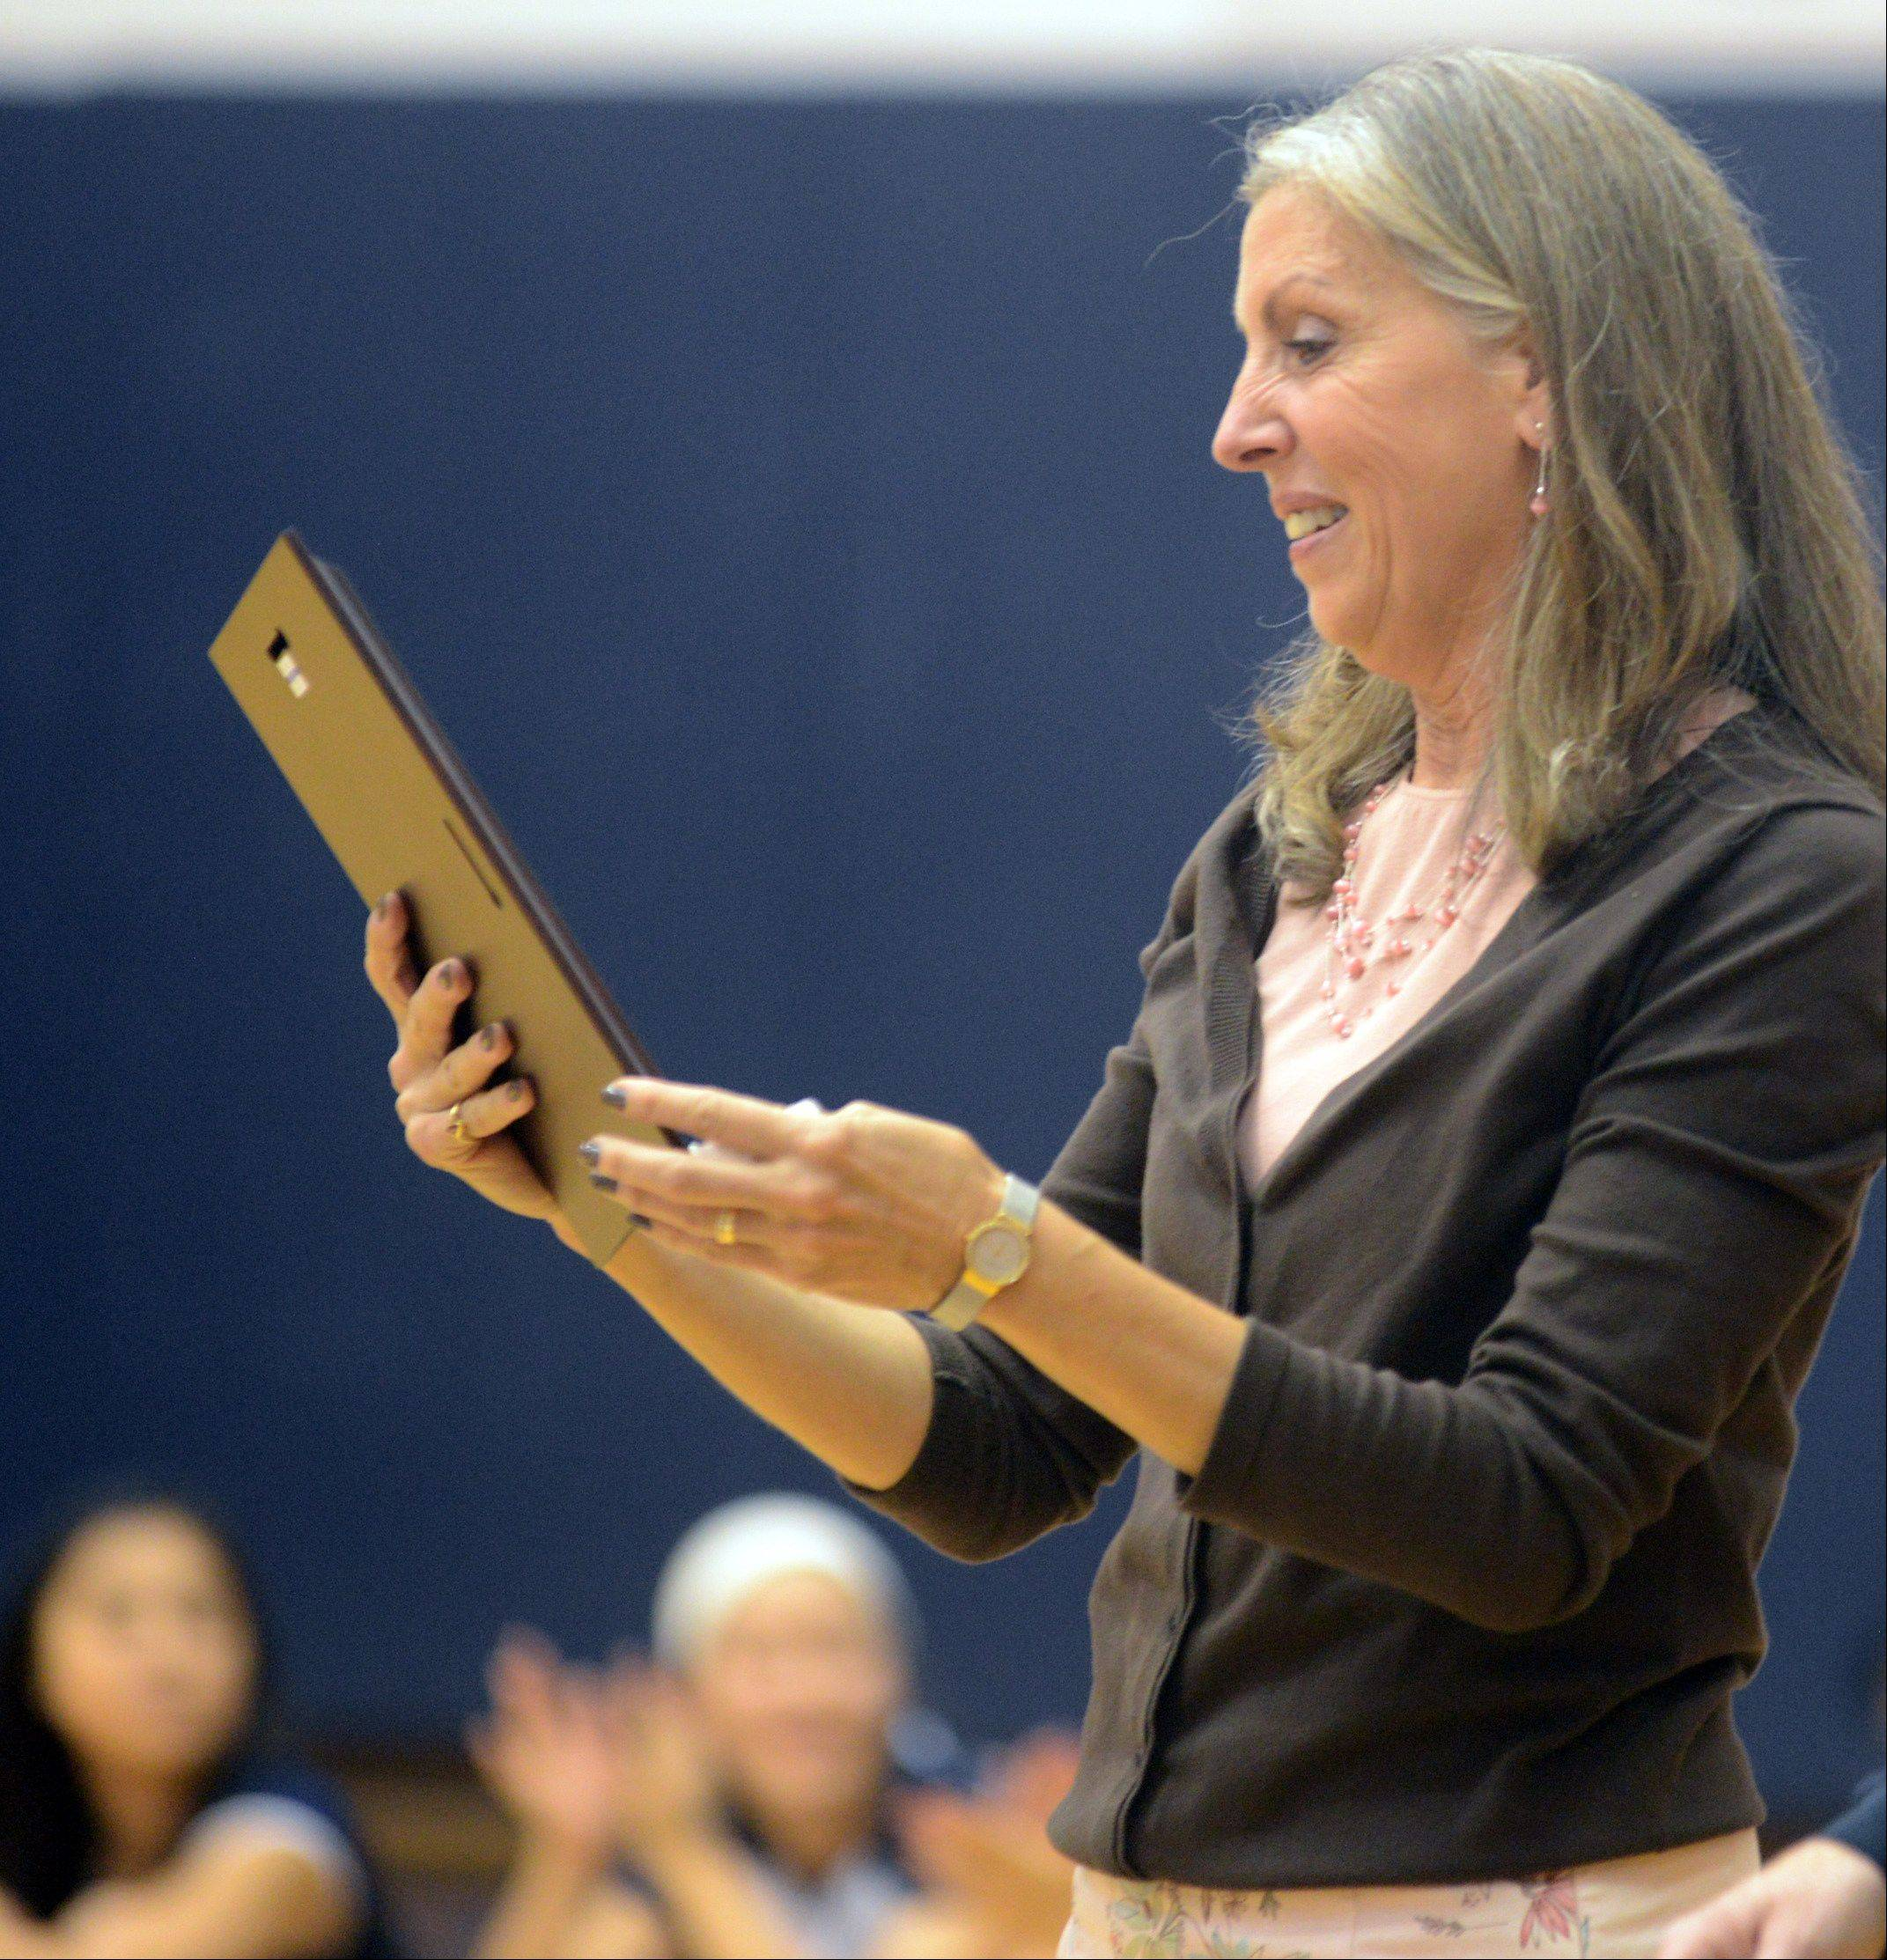 Conant volleyball coach Peggy Scholten was honored before a game with Schaumburg on Tuesday night at William N. Perry Gymnasium. Scholten is retiring after this, her 37th year of coaching. Here, Scholten admires a plaque given to her during a pregame tribute.